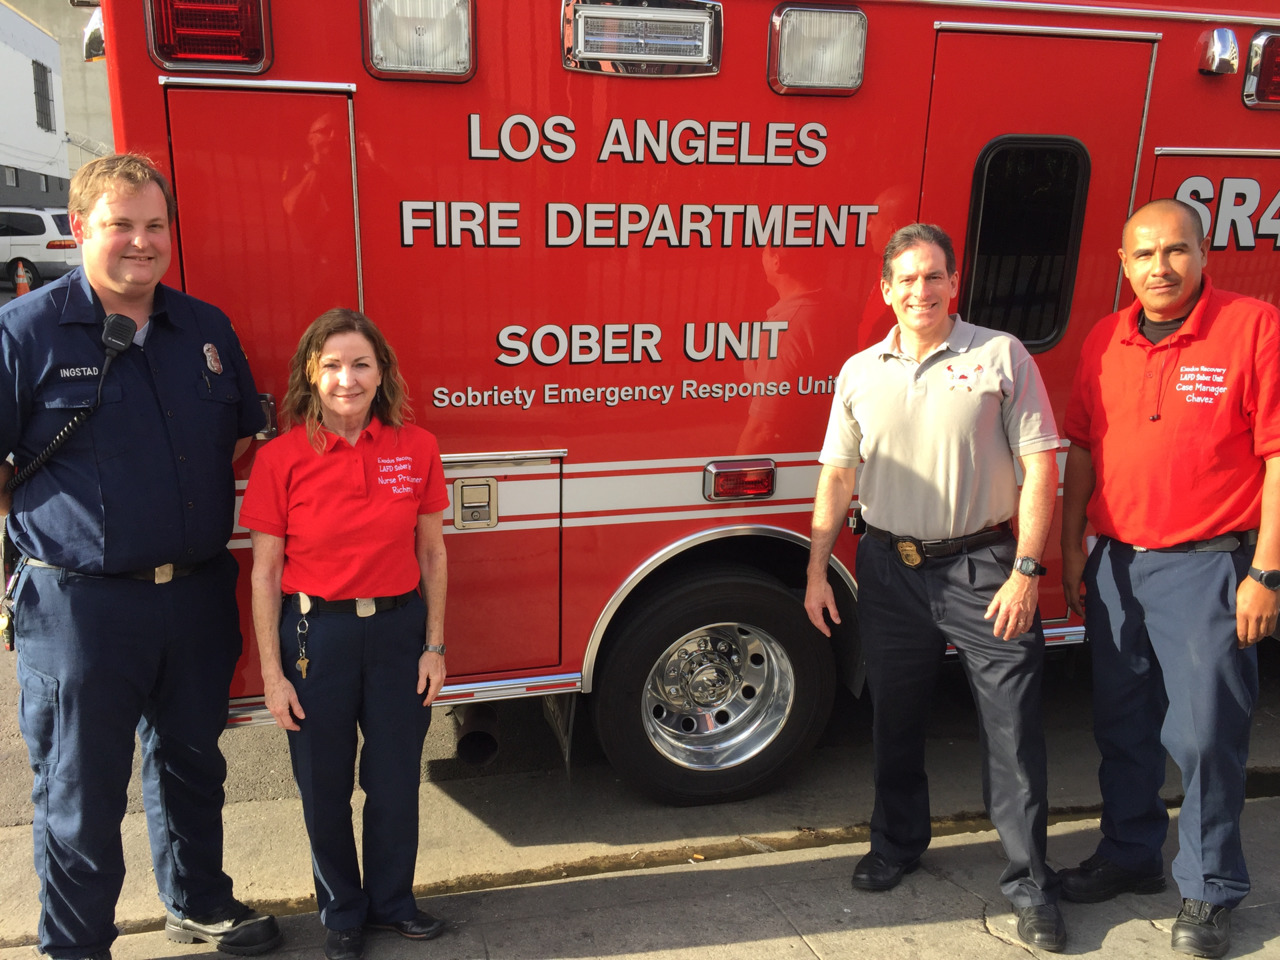 Lafd Sober Unit Receives Community Service Award Los Angeles